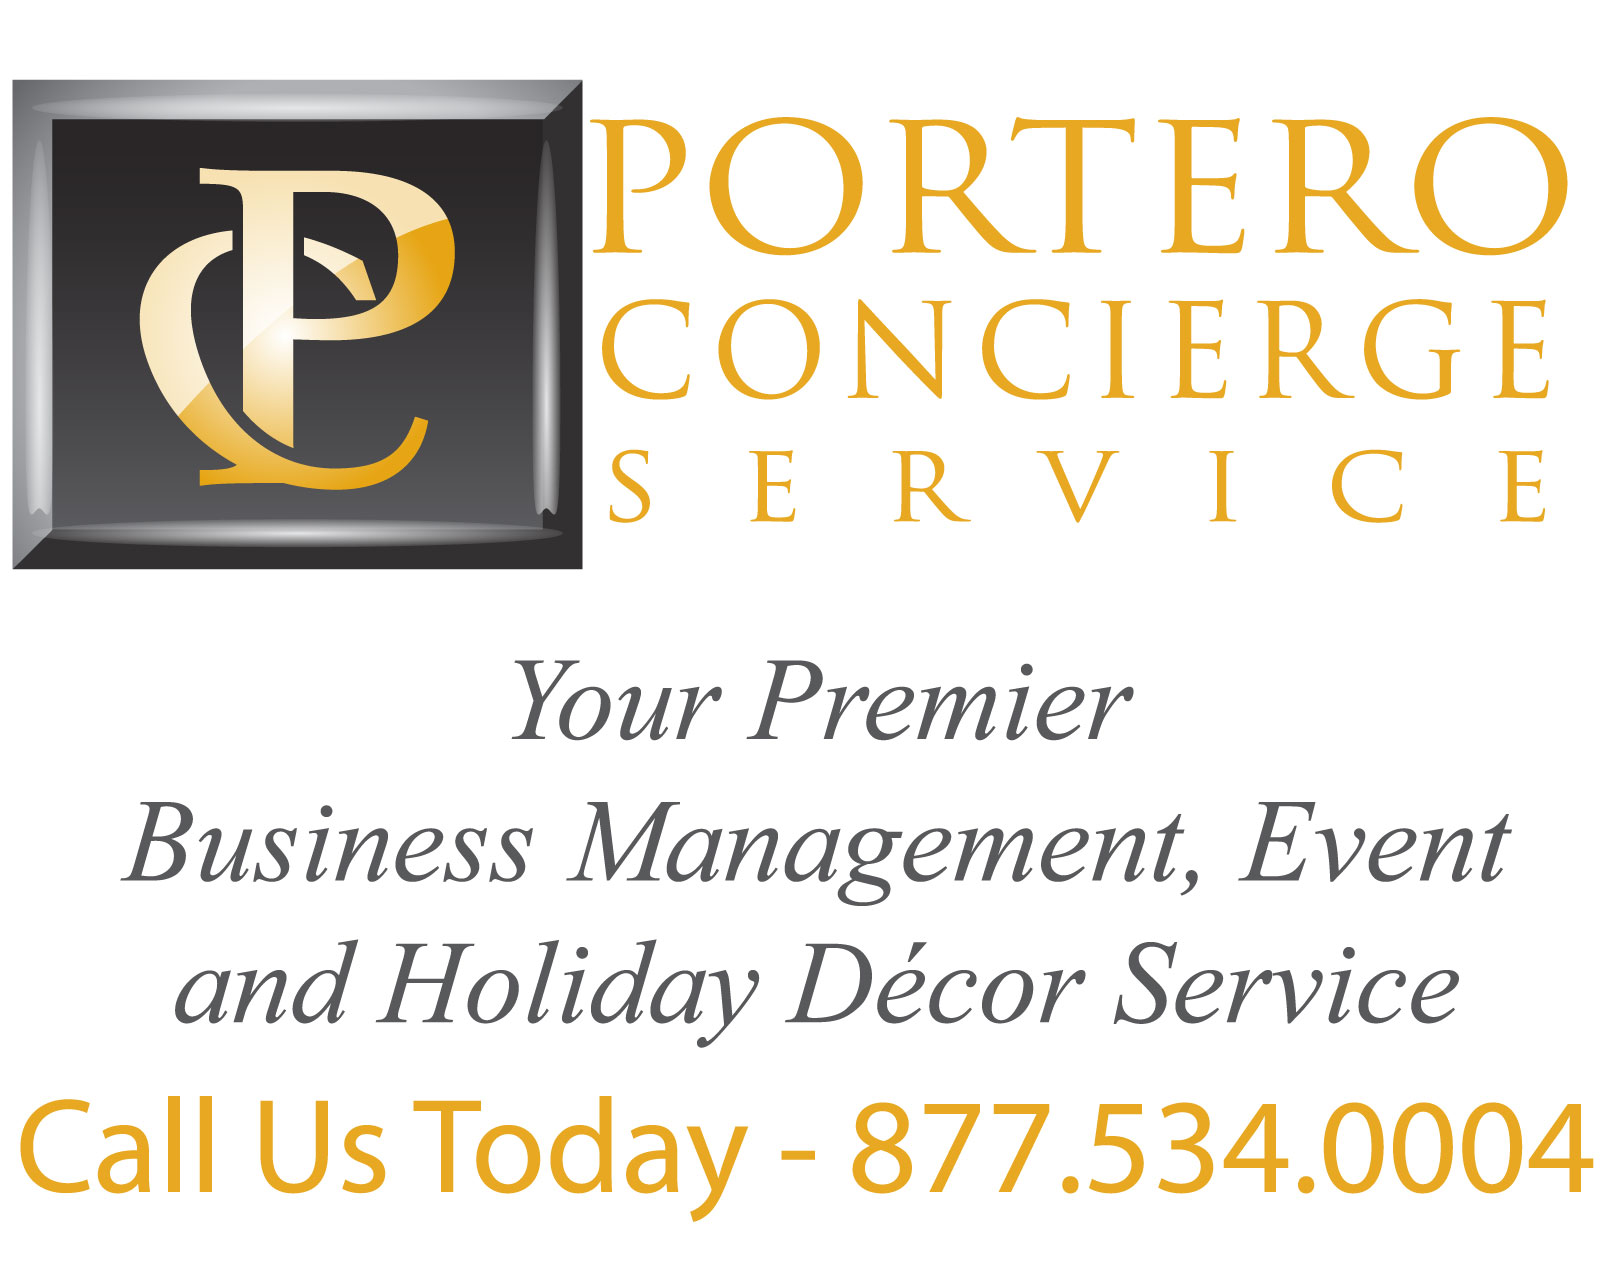 Portero Concierge Services Logo and contact information